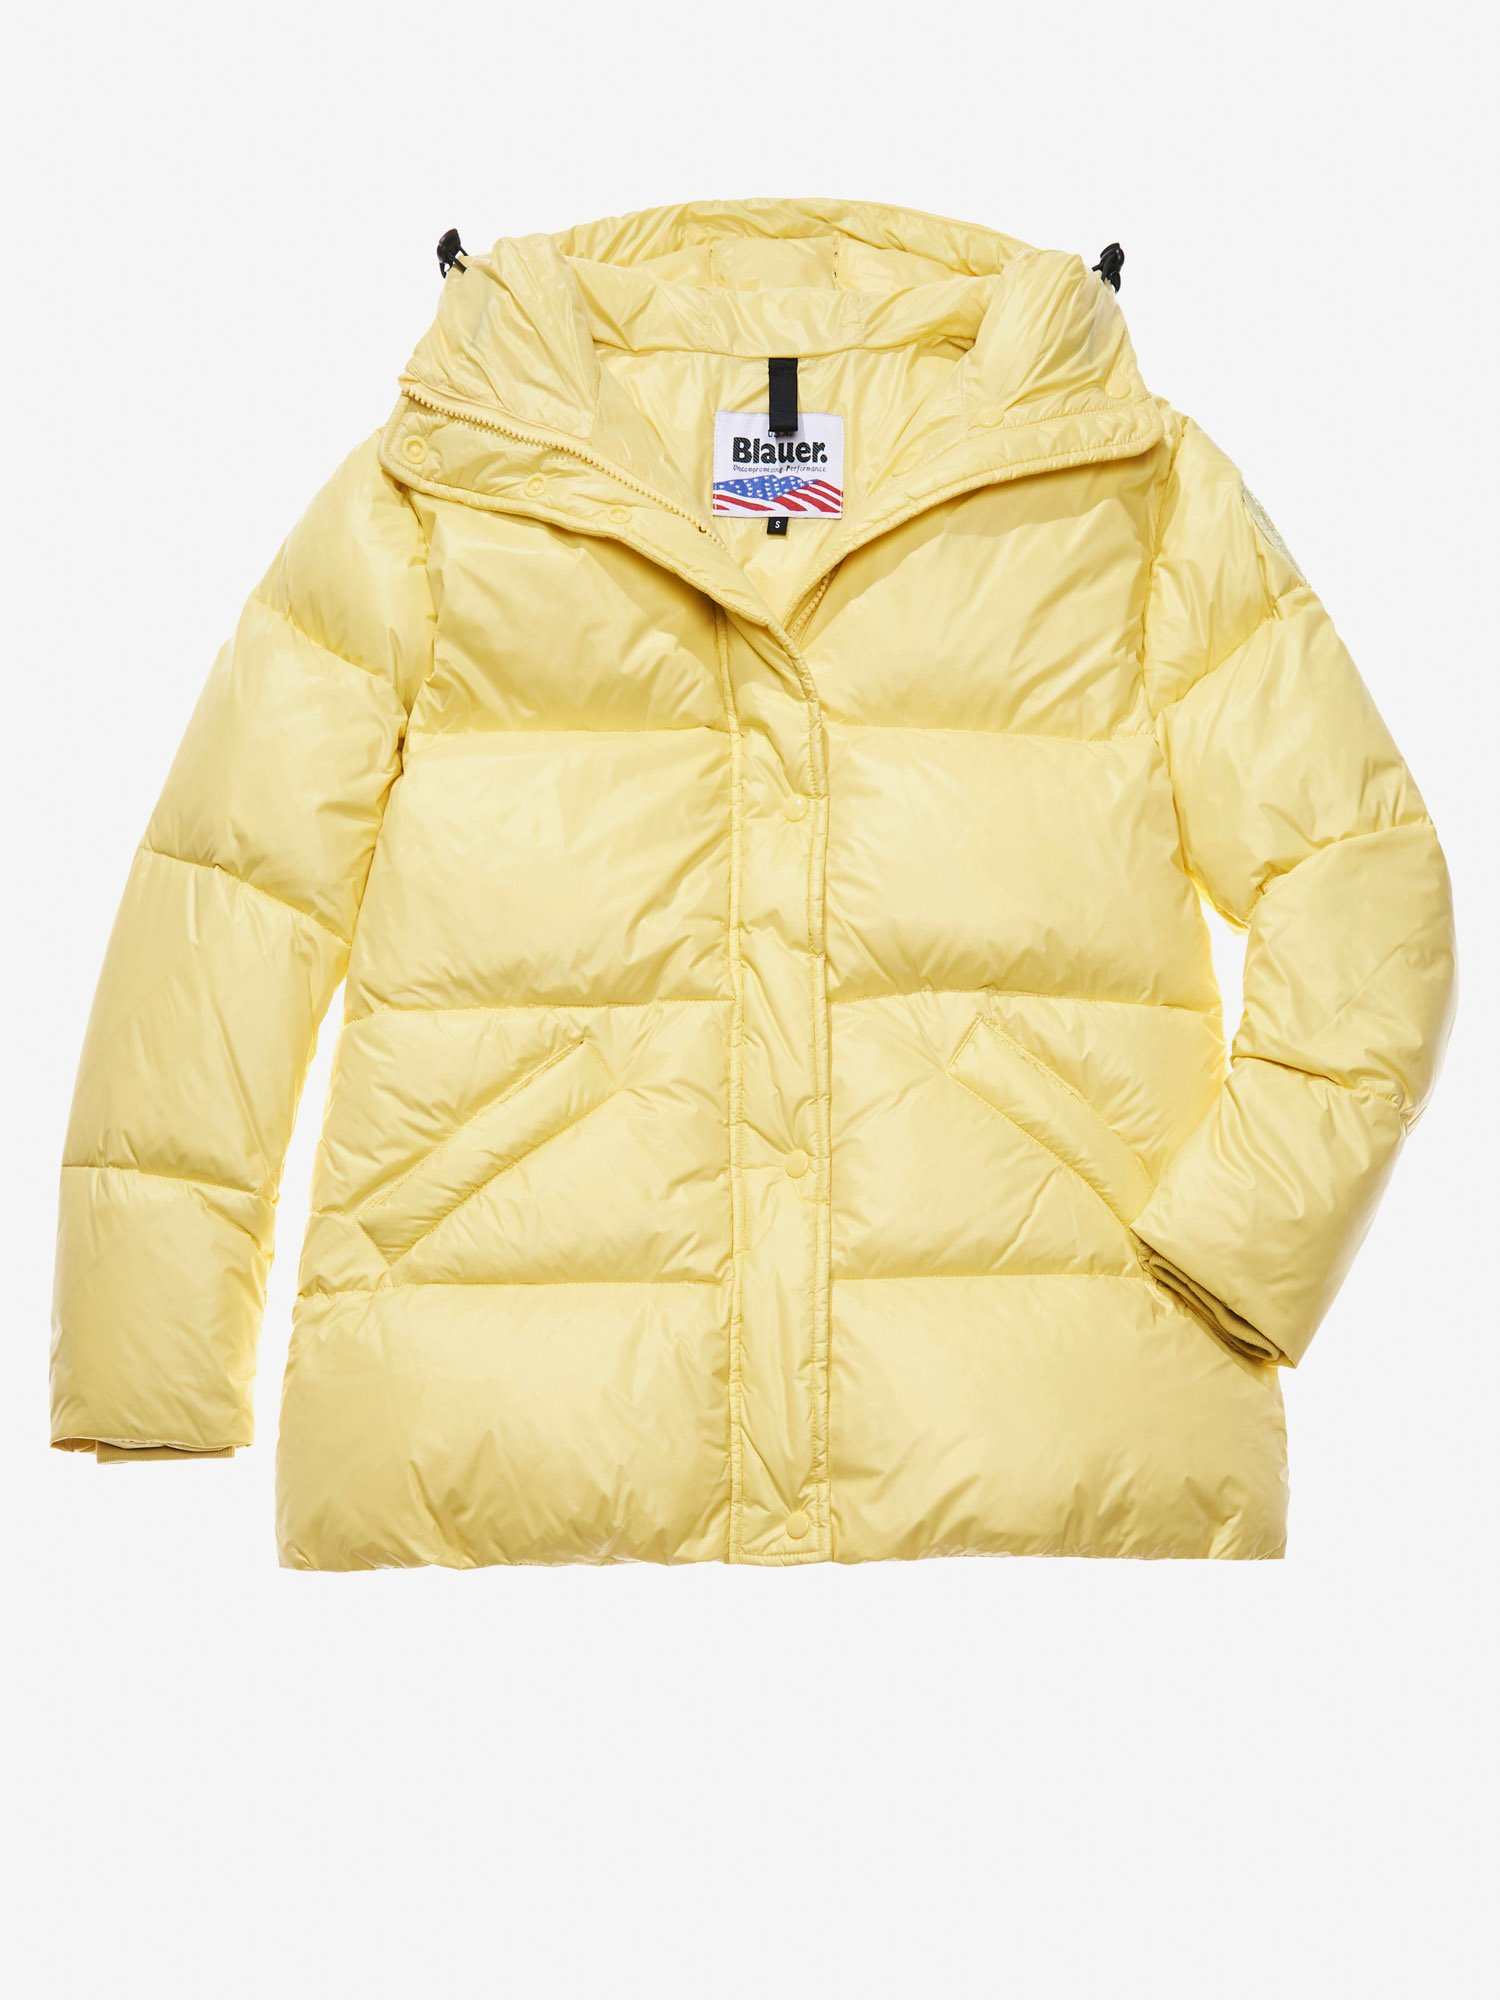 MEGAN OVERSIZED PUFFER DOWN JACKET - Blauer